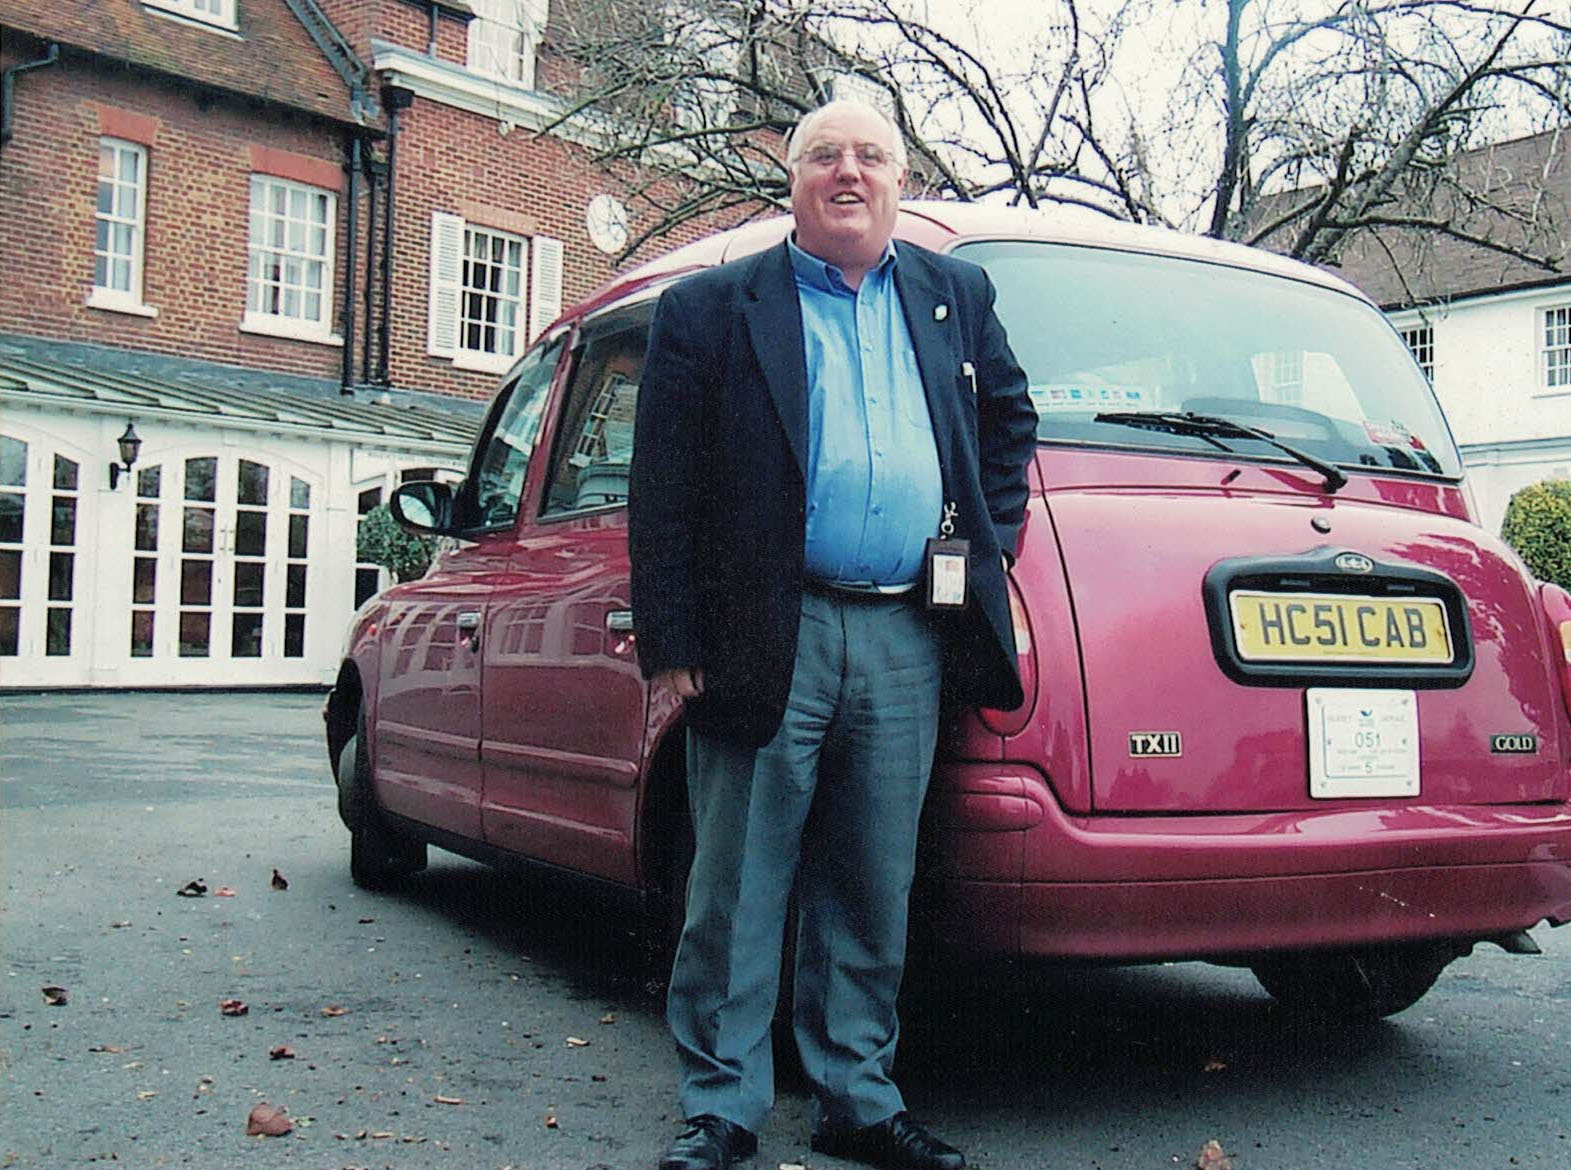 Ray with his HC51CAB London taxi at the Compleat Angler, Marlow - circa 2002